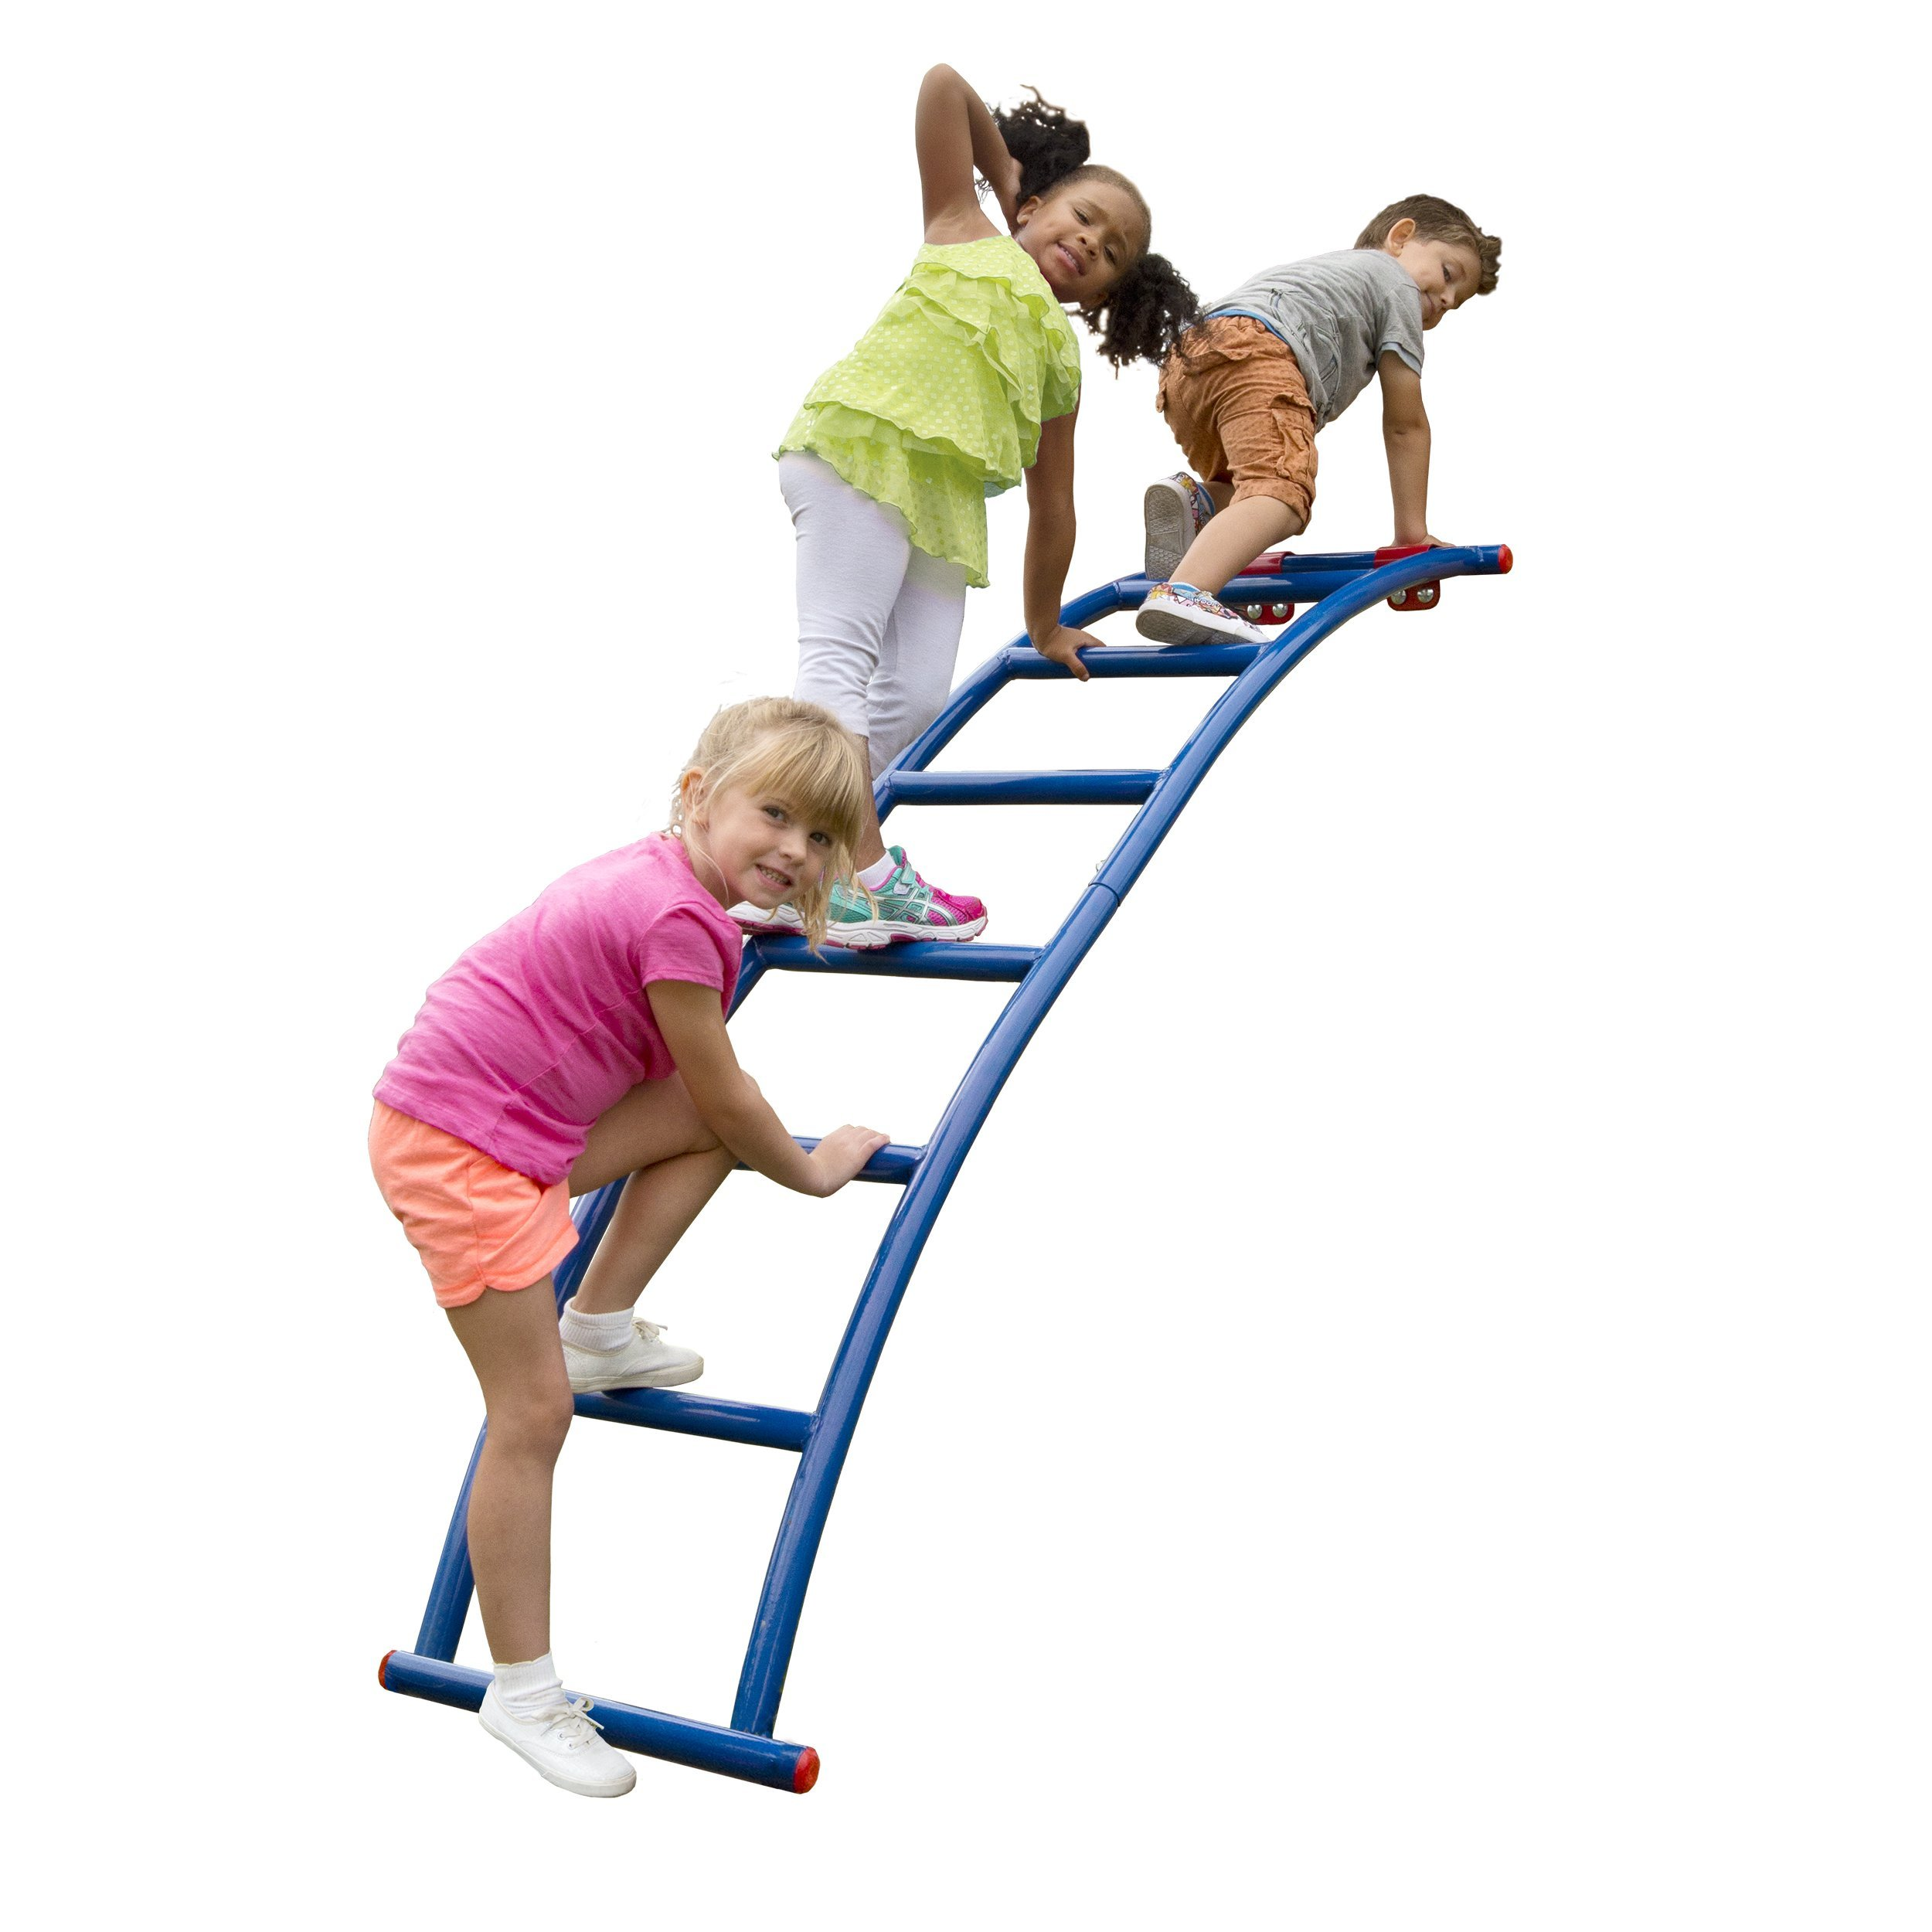 Swing-N-Slide NE 5040 Metal Arch Ladder with Multiple Configurations for Swing Sets, Play Sets & Playhouses, Blue & Red by Swing-N-Slide